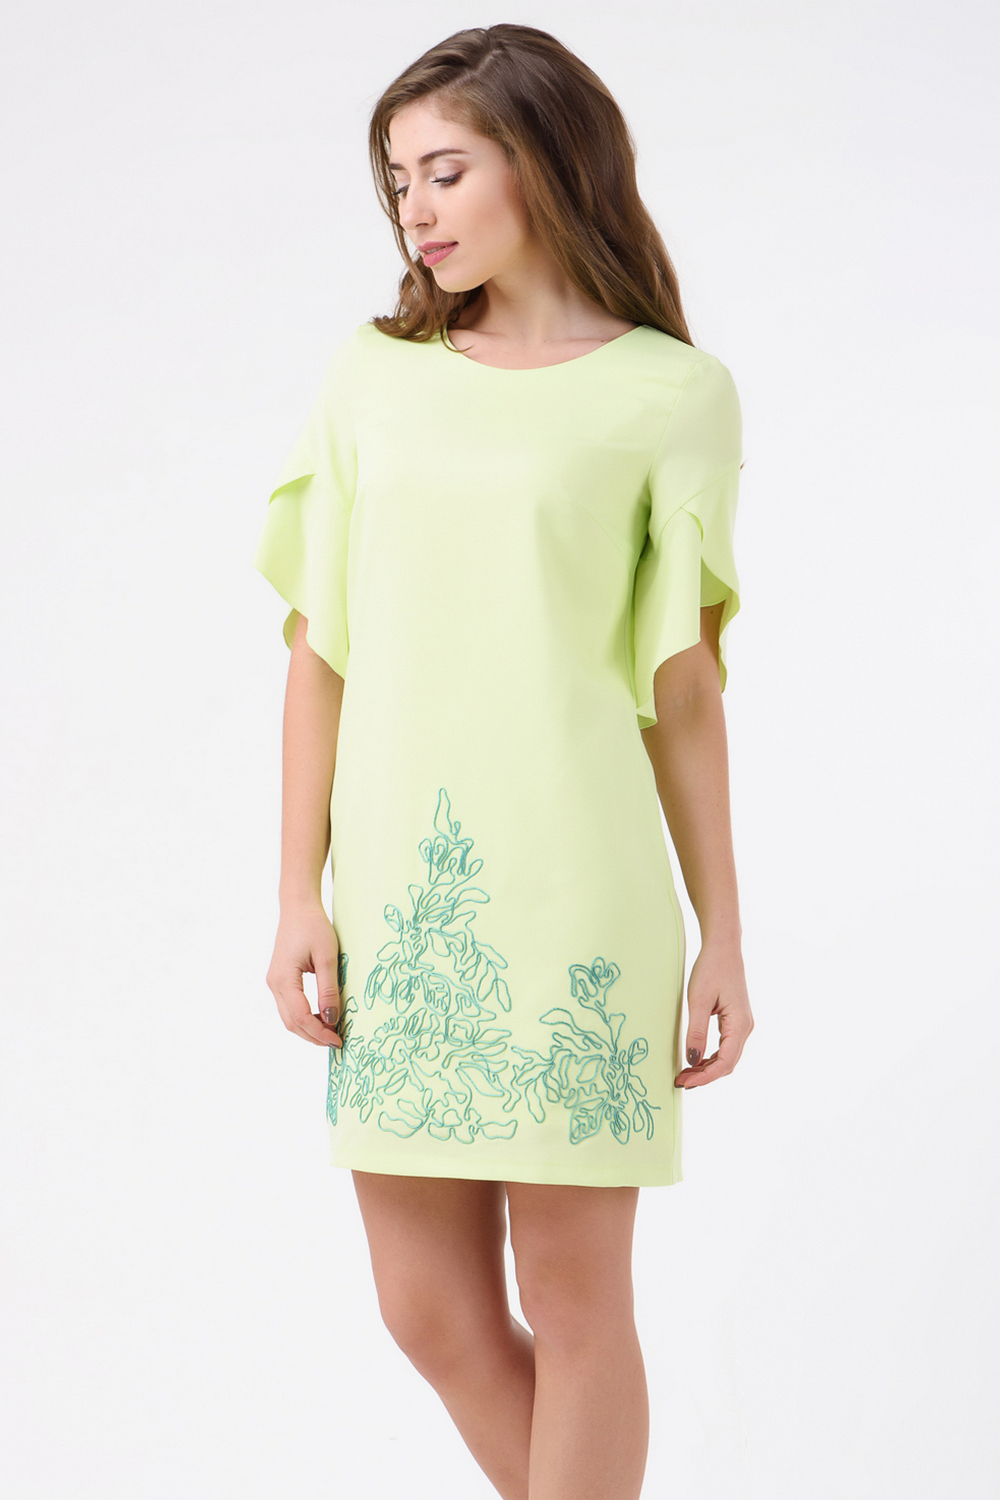 Buy Beautiful elegant green short dress with embroidery, Short sleeve dress with decor